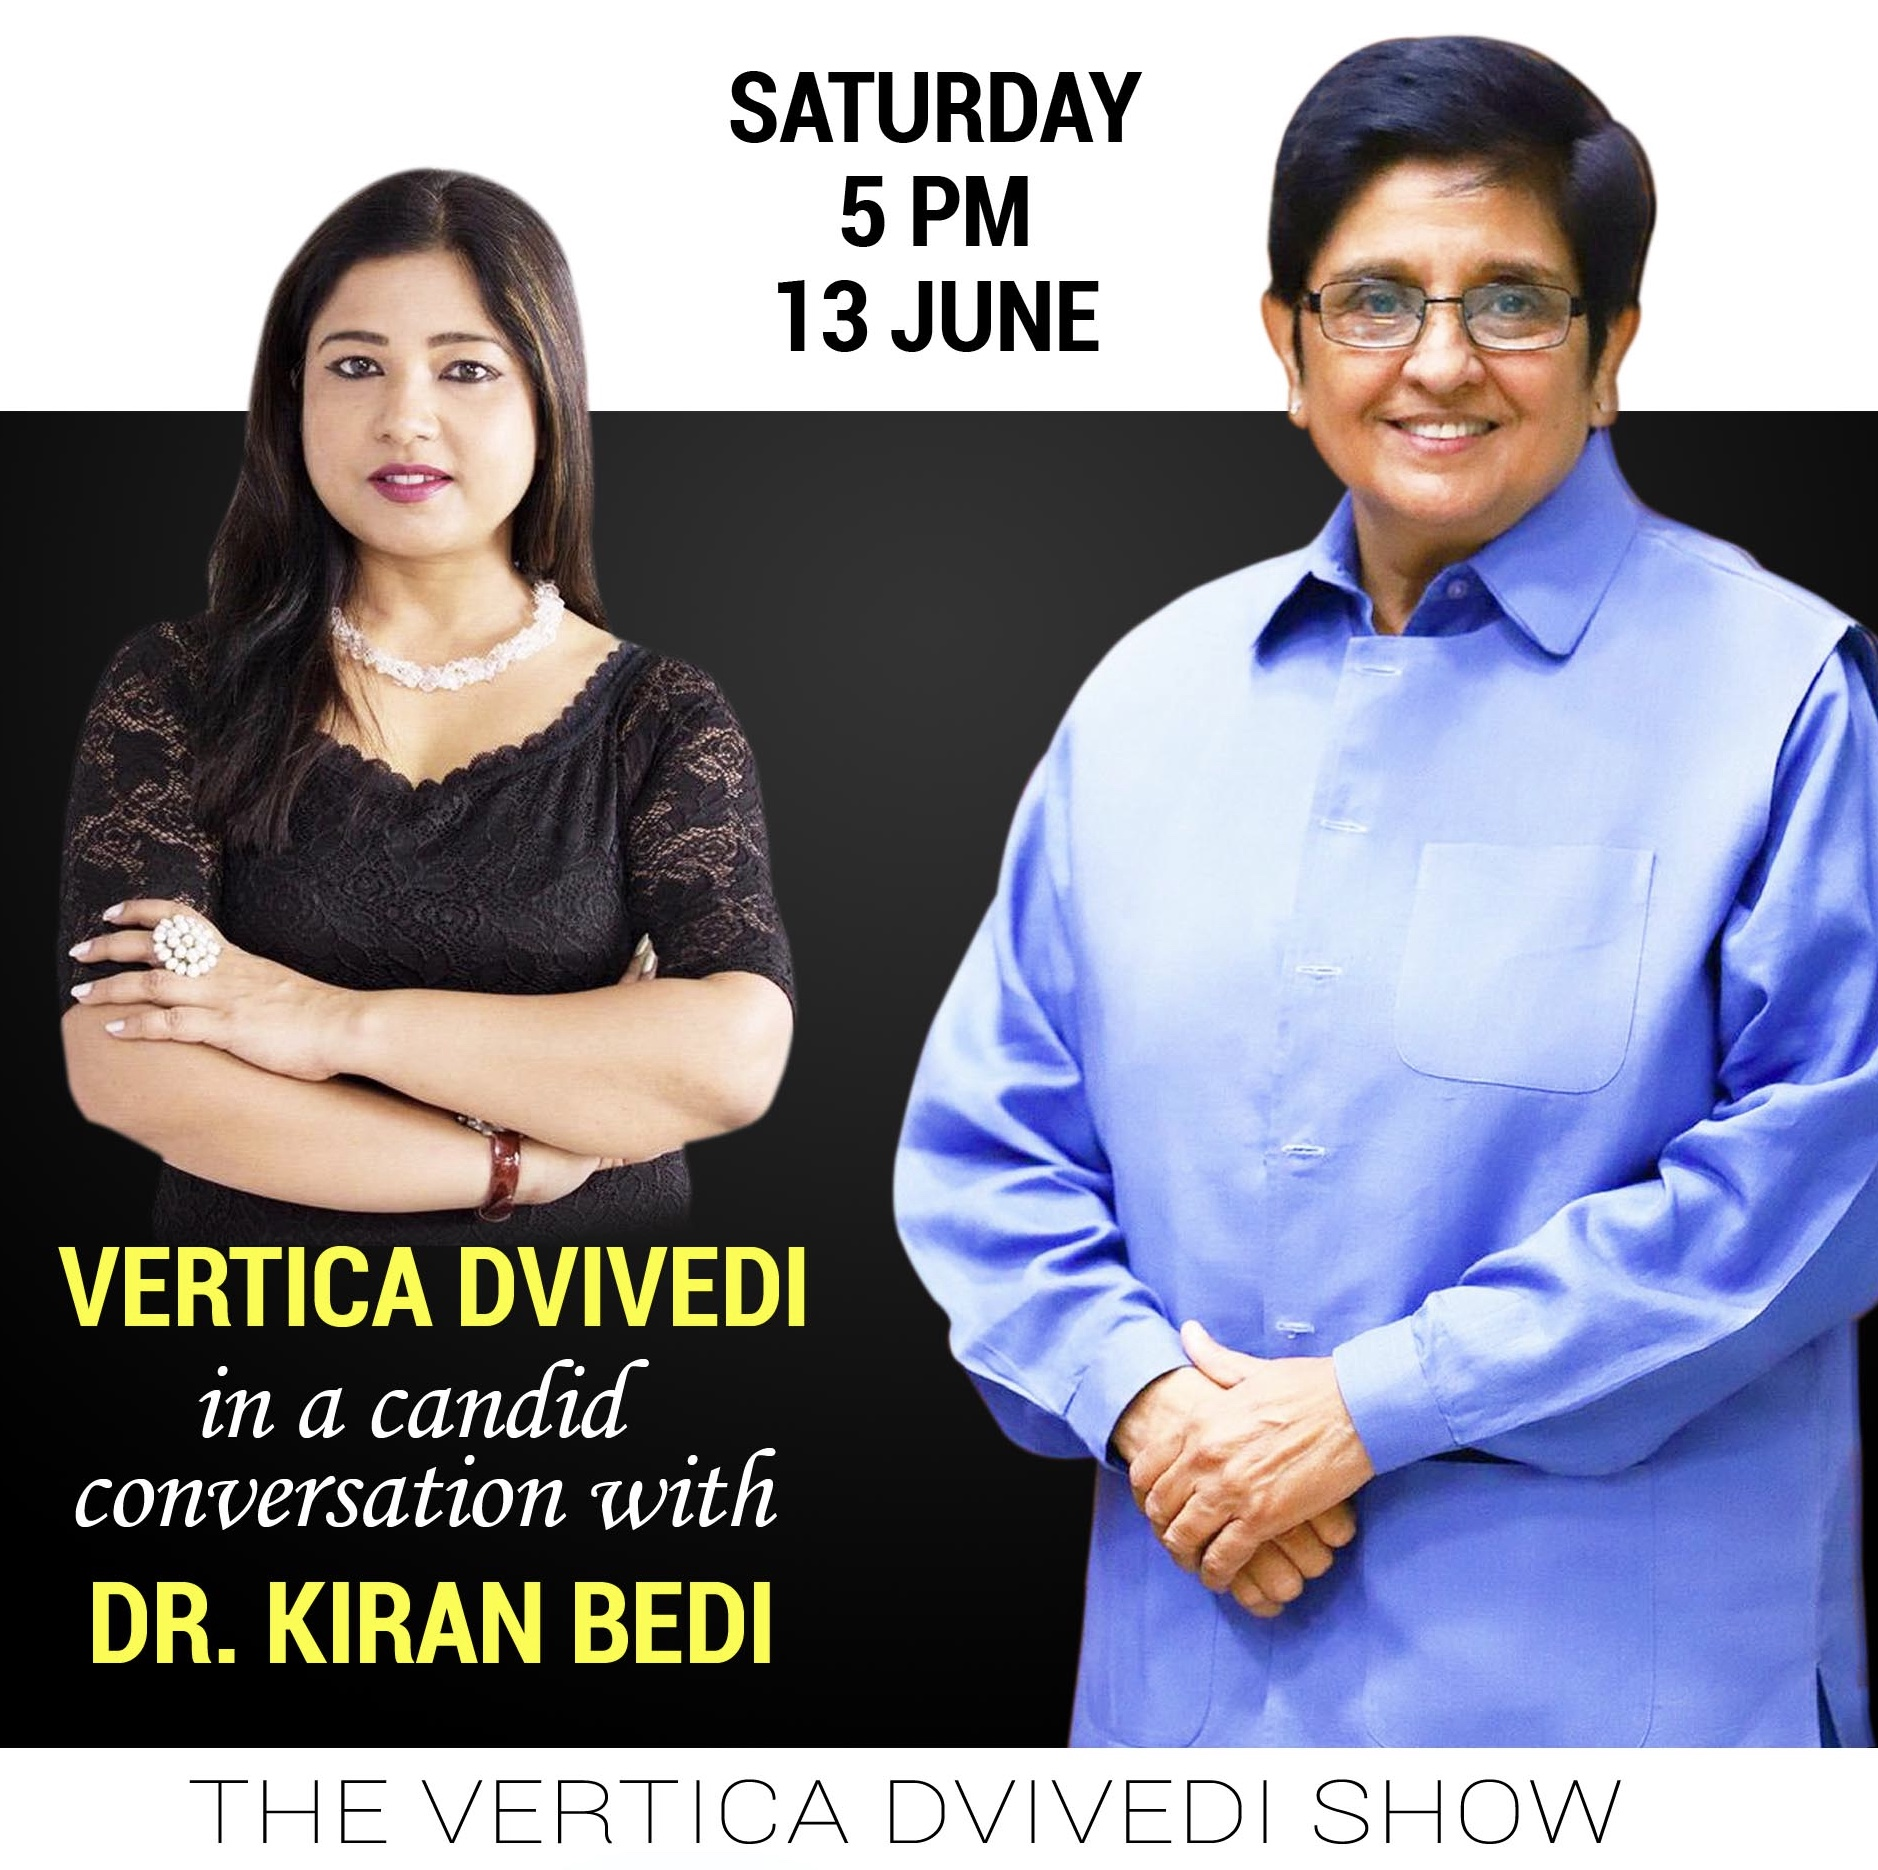 Join Vertica Dvivedi in a candid conversation with Dr KIRAN BEDI - Sat/ 13 June/ 5 PM